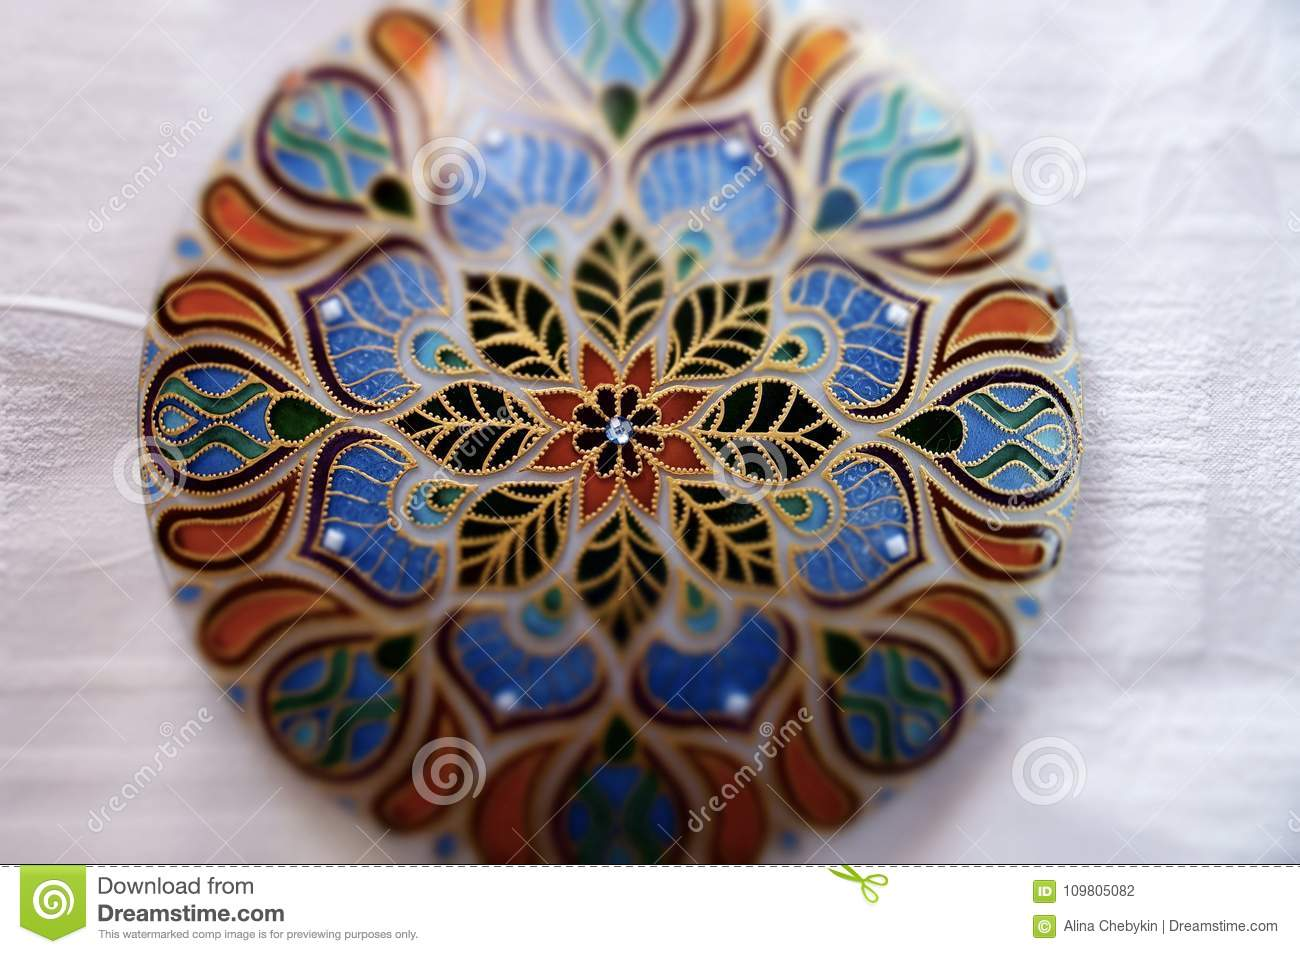 f3f6d8166d360 Hand Painted Lamp In Mandala Geometric Style Stock Photo - Image of ...